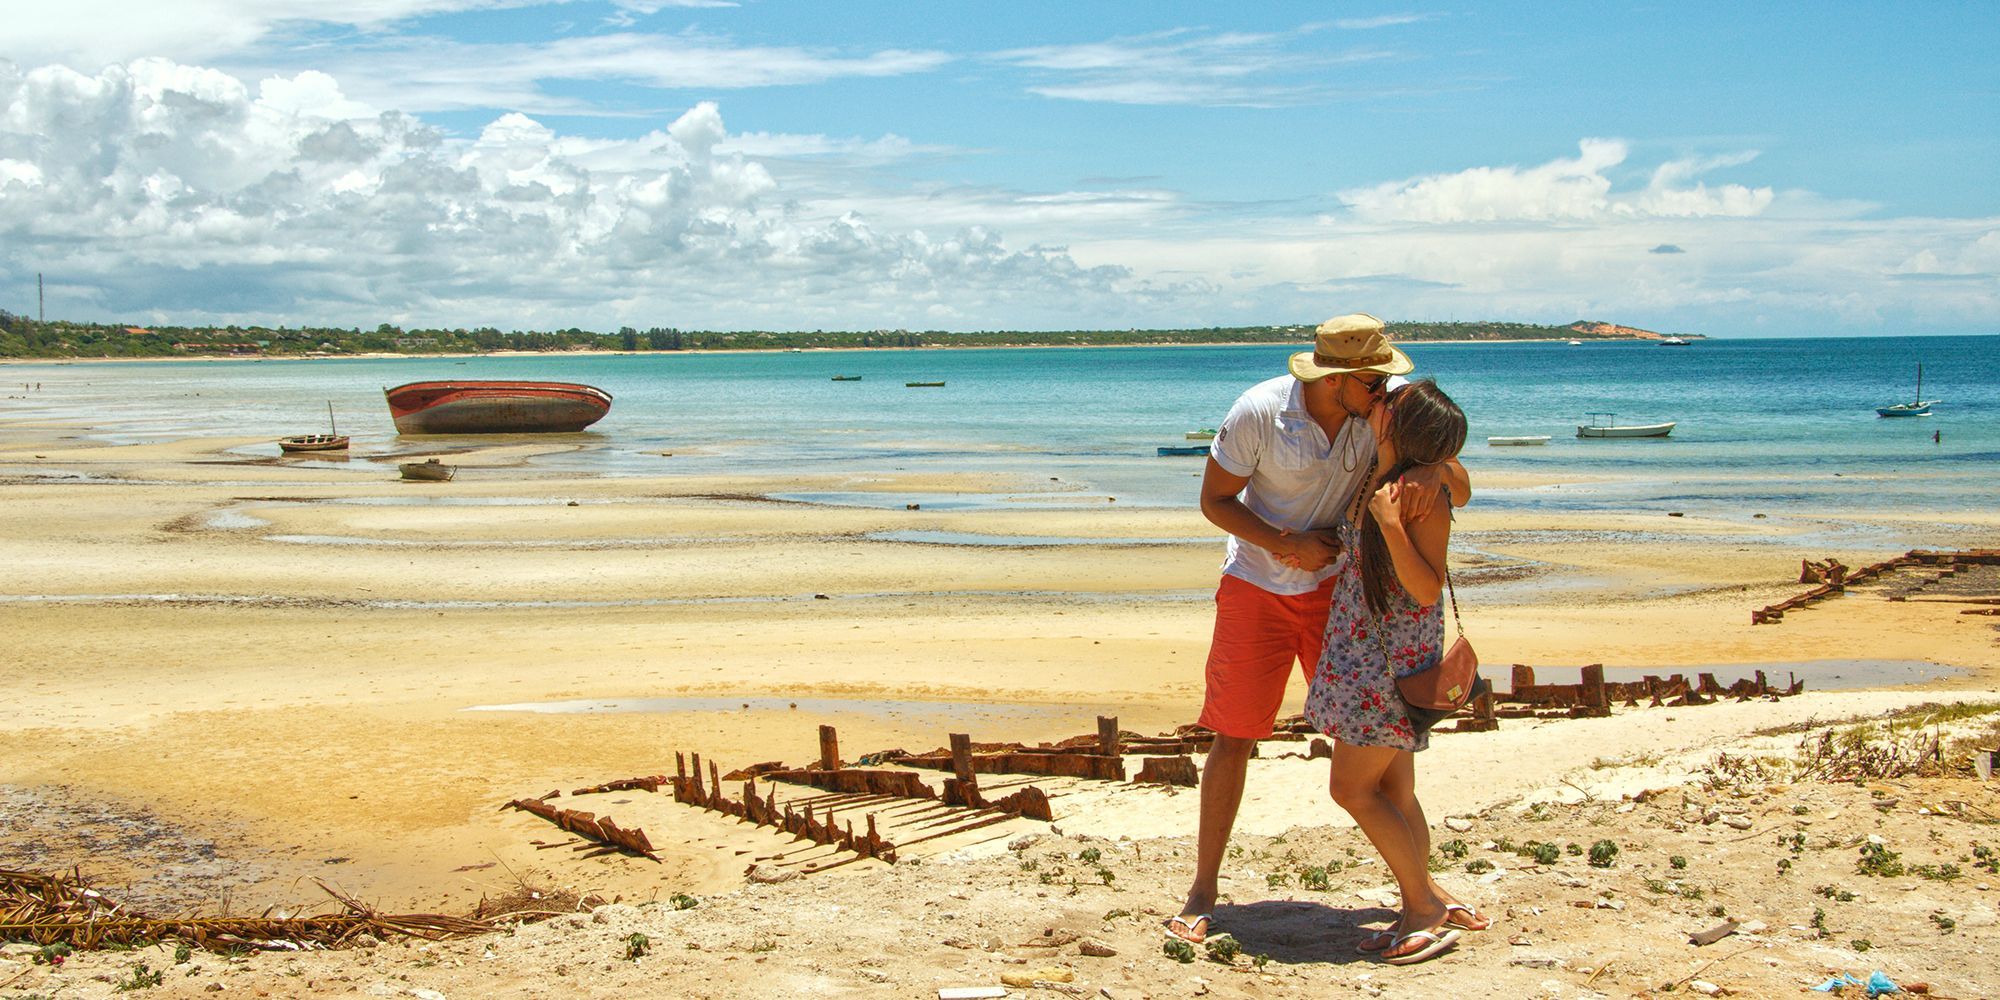 a travel blogger couple kissing on a beach located in the bay of Vilankulos in Mozambique